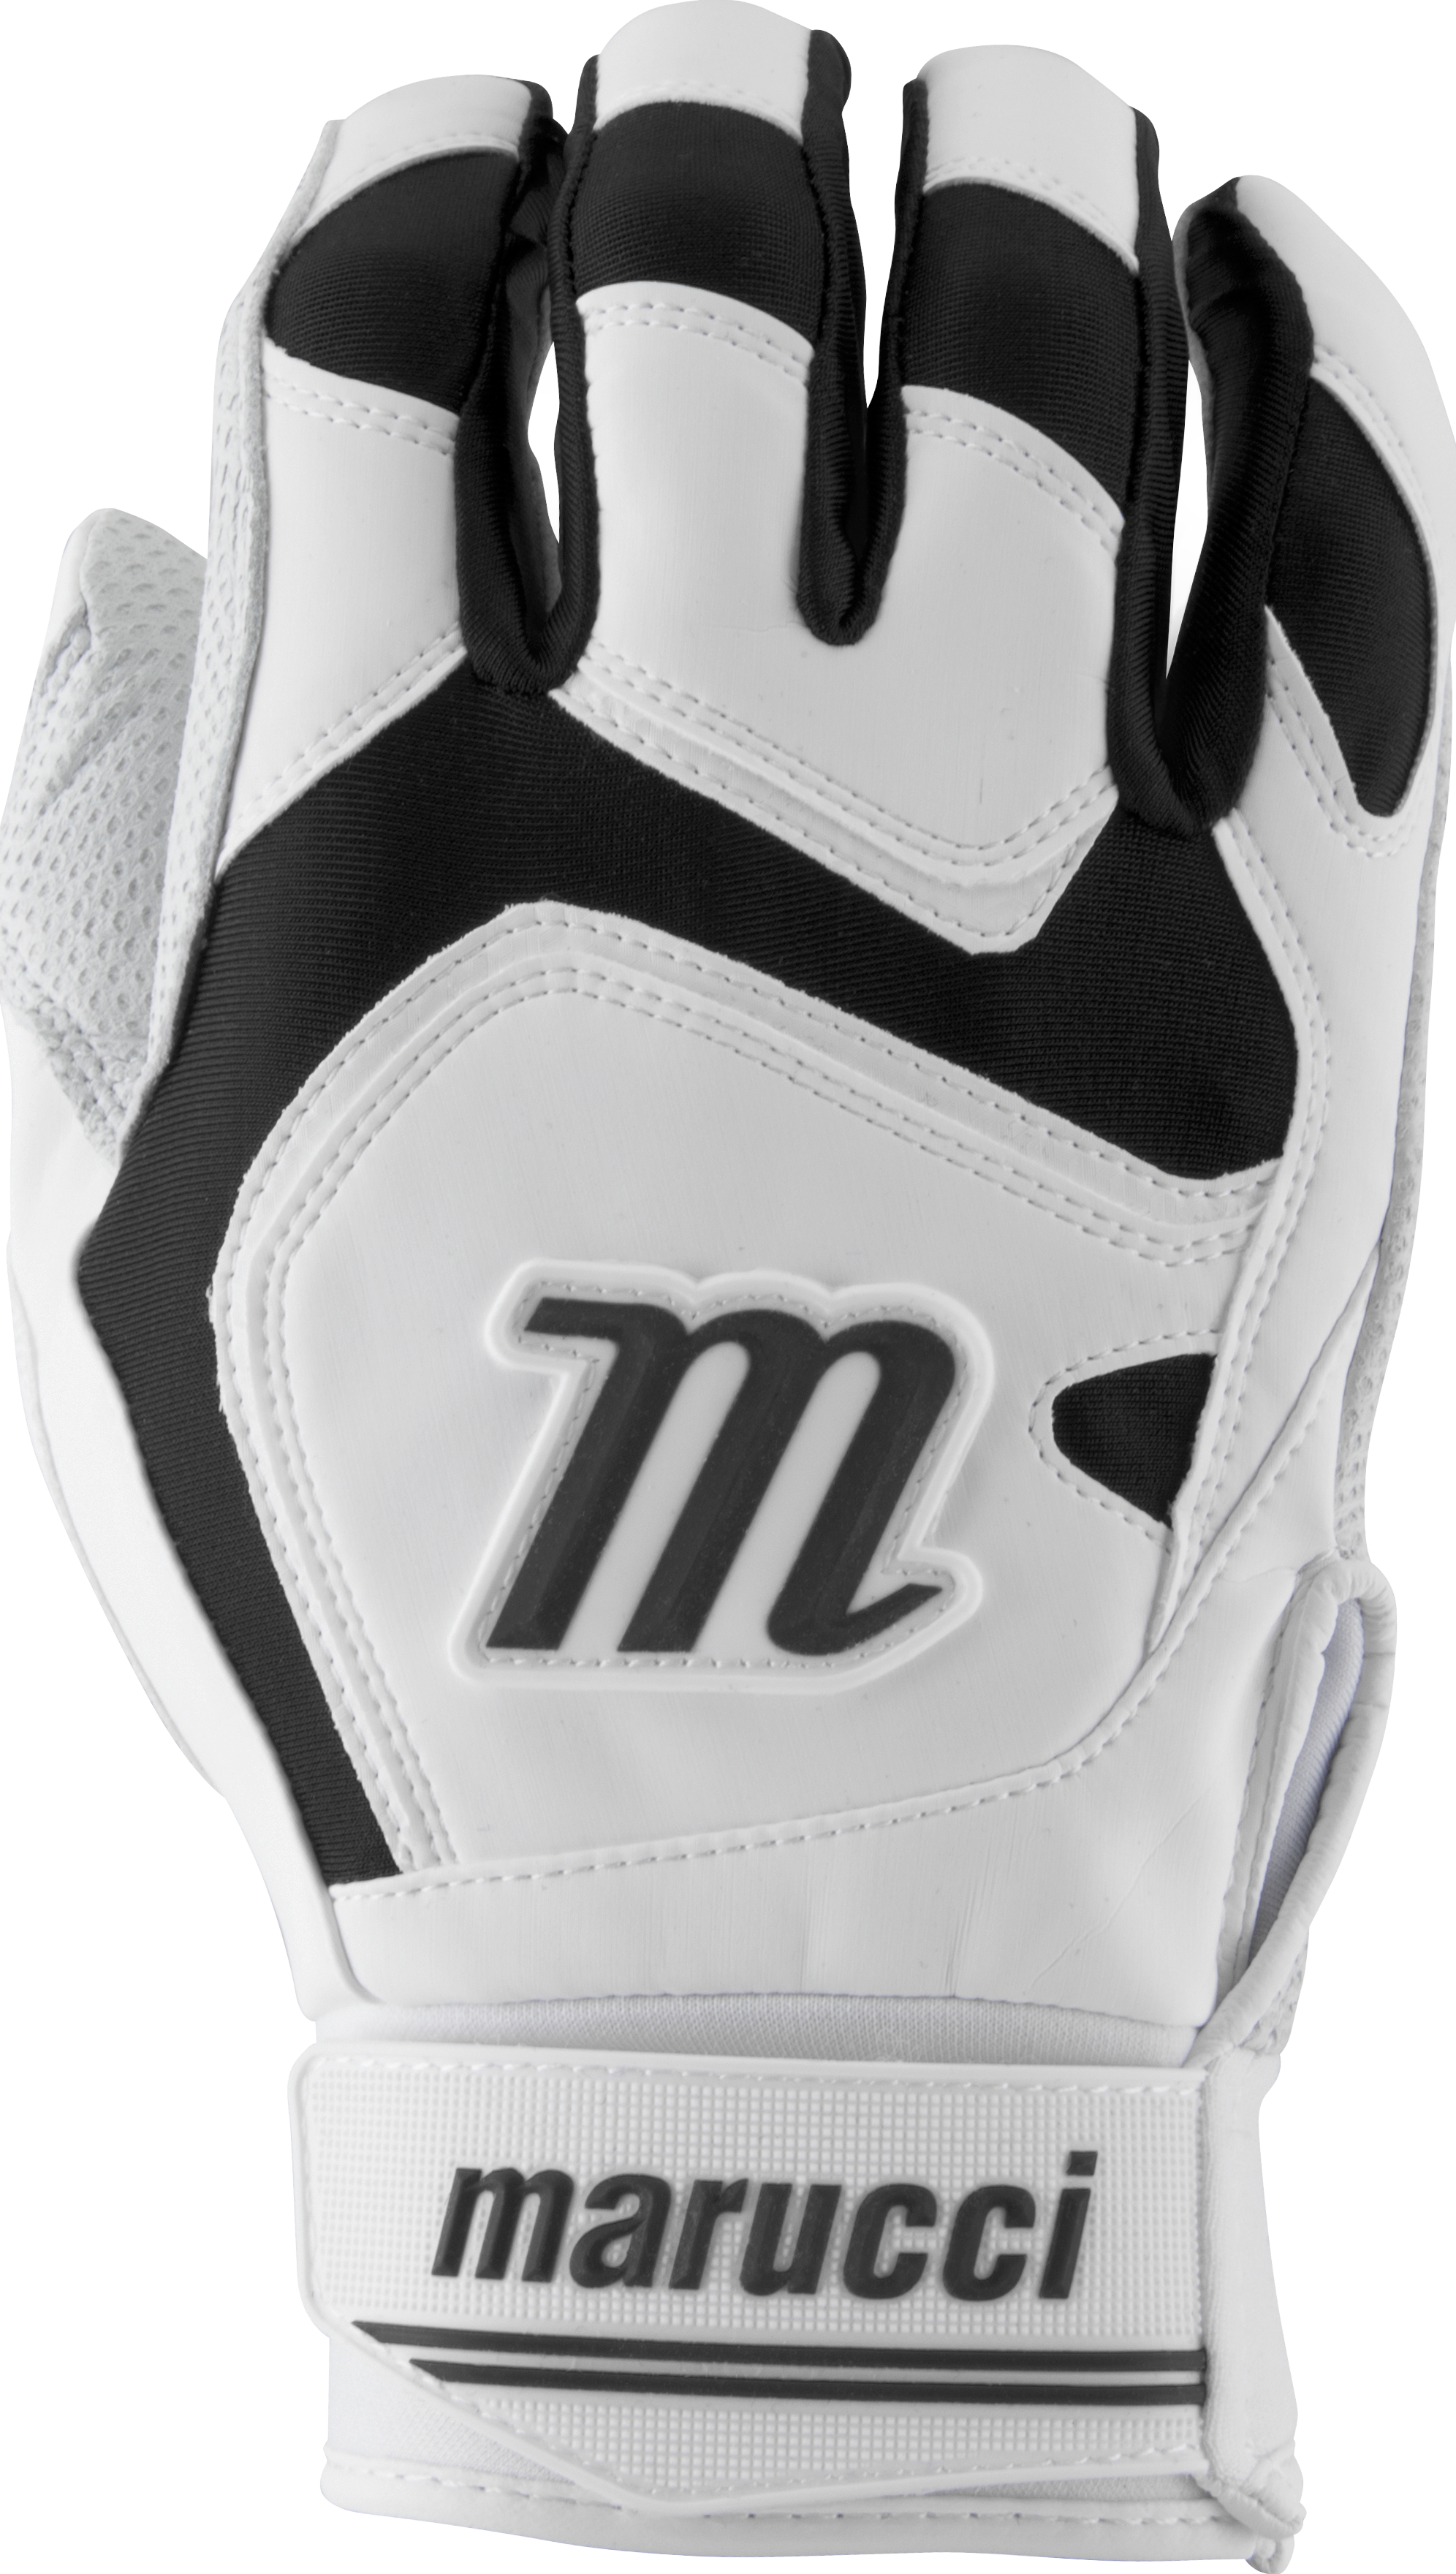 marucci-signature-batting-gloves-mbgsgn2-1-pair-white-black-adult-small MBGSGN2-WBK-AS  849817096604 2019 Model MBGSGN2-W/BK-AS Consistency And Craftsmanship Commitment To Quality And Understanding